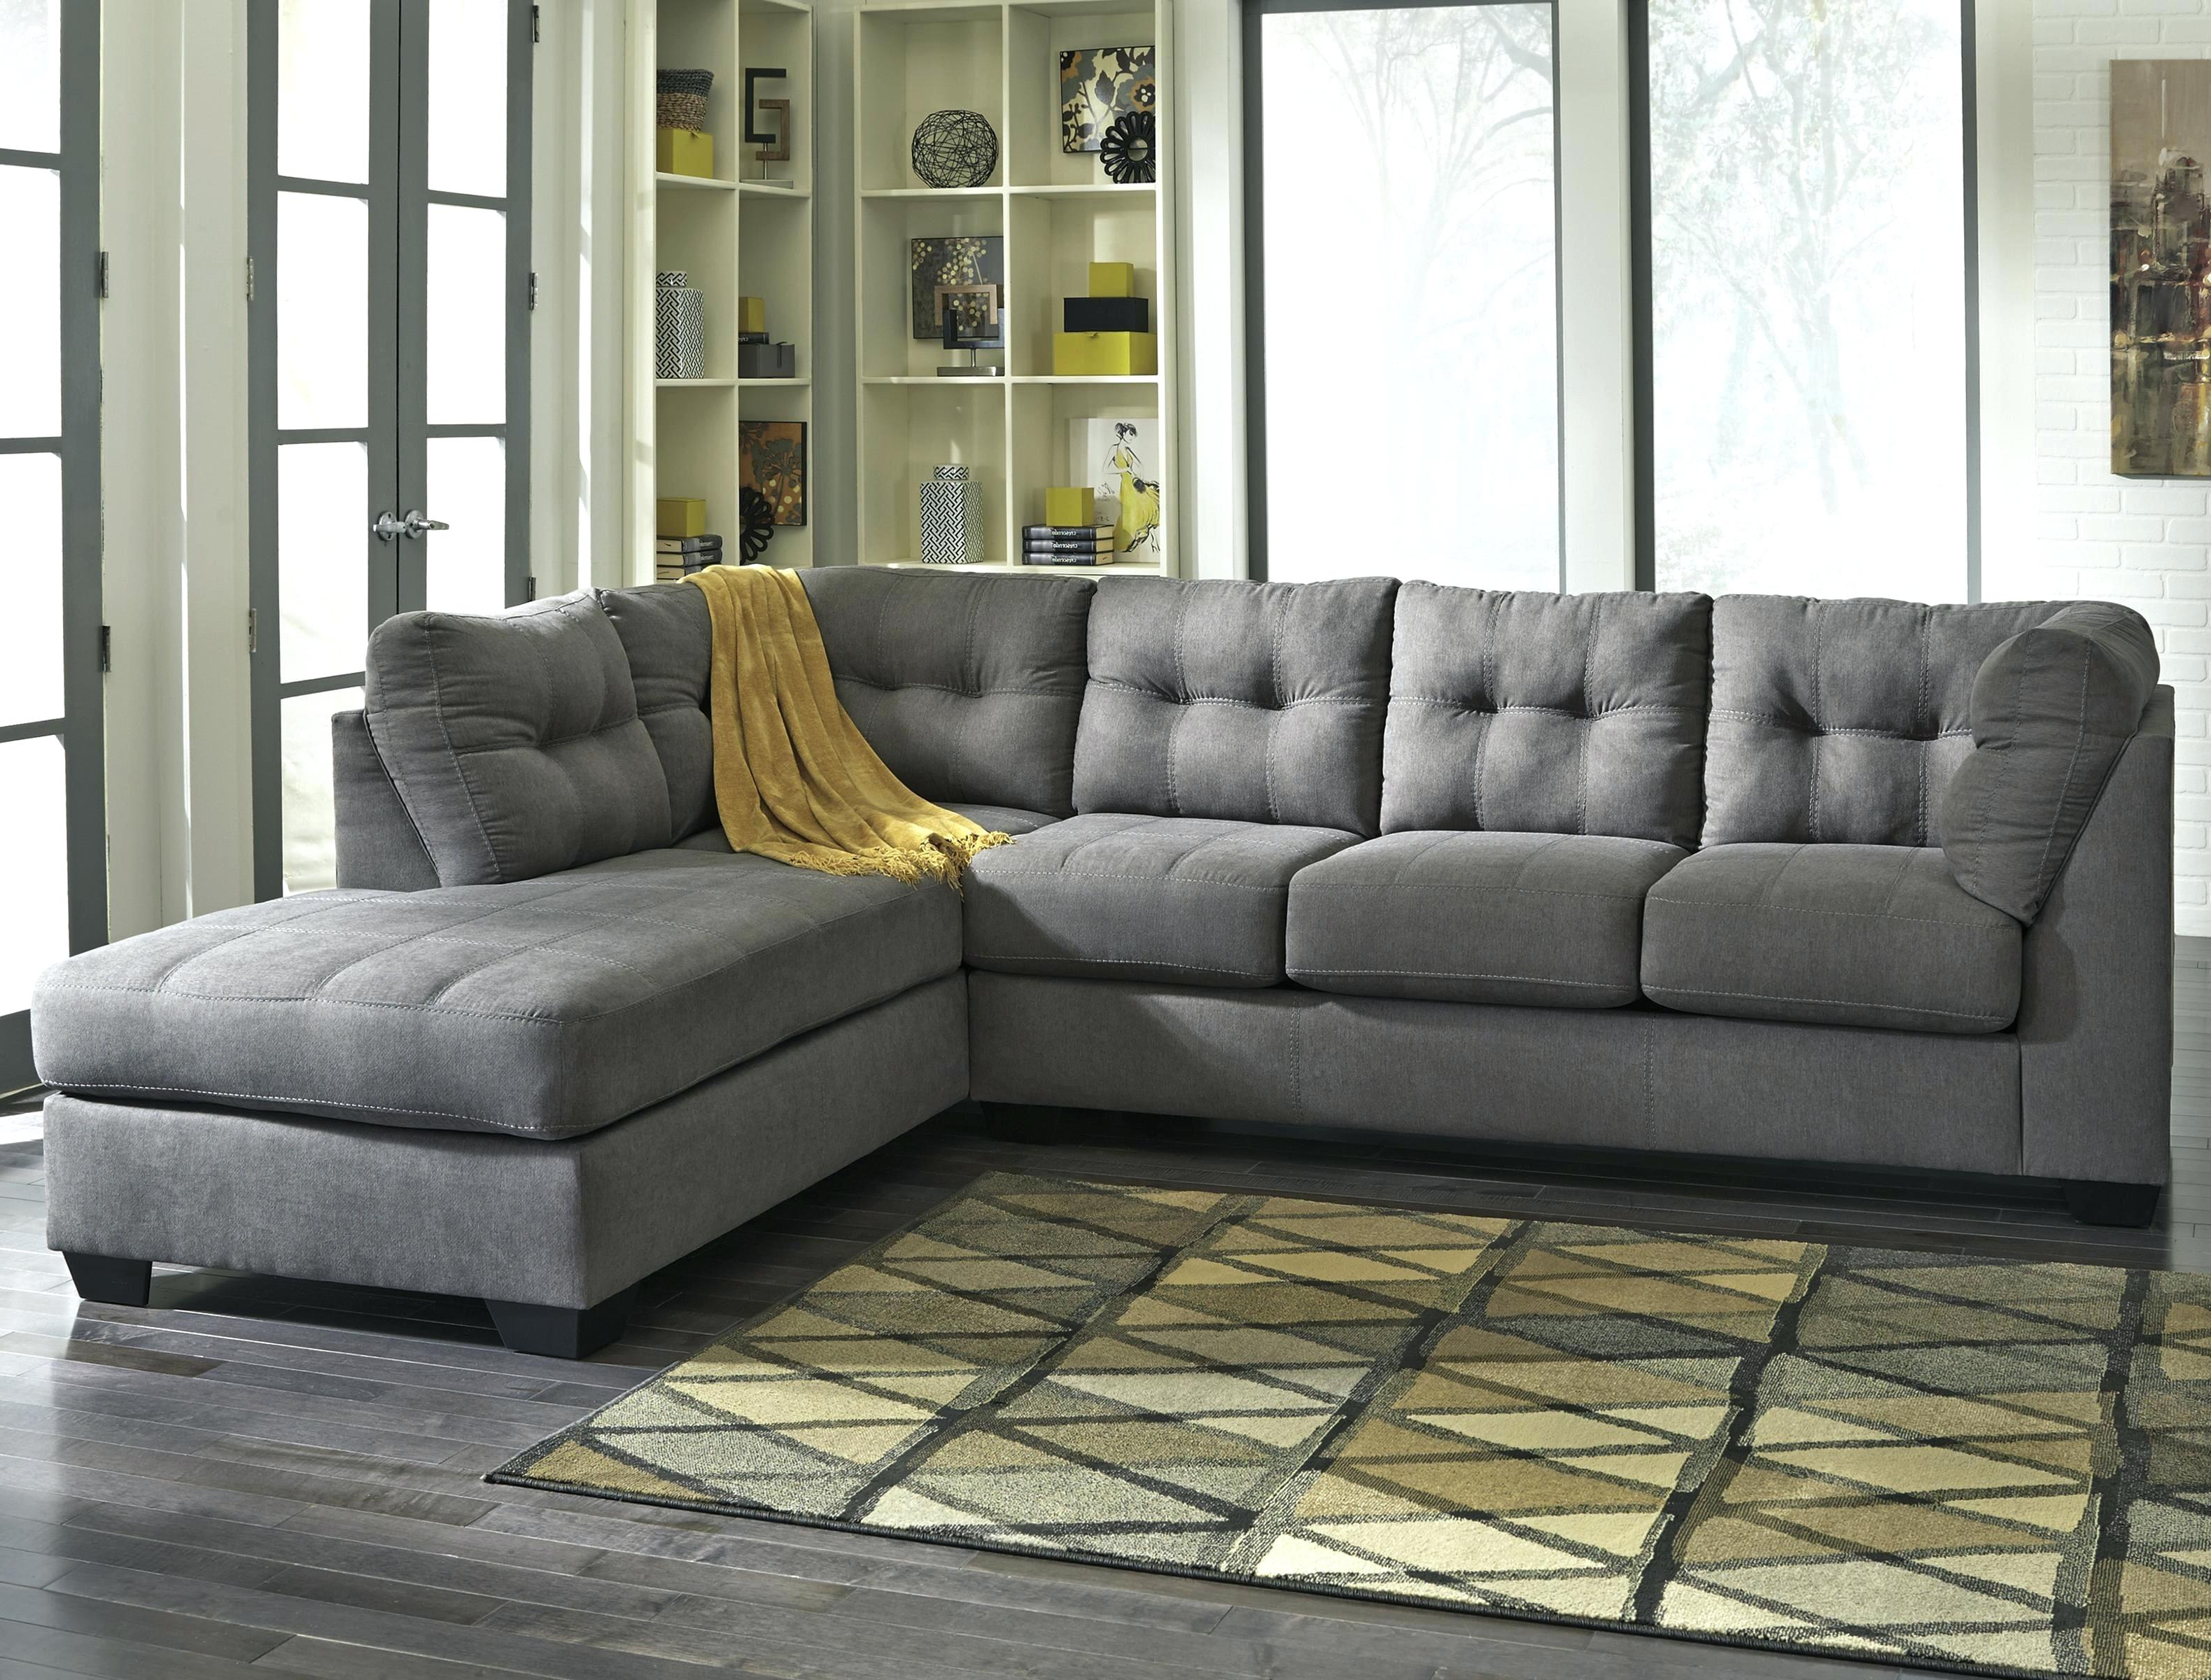 2 Piece Sectional Sofa With Chaise 2 Piece Sectional With Chaise In Latest Jobs Oat 2 Piece Sectionals With Left Facing Chaise (View 9 of 20)